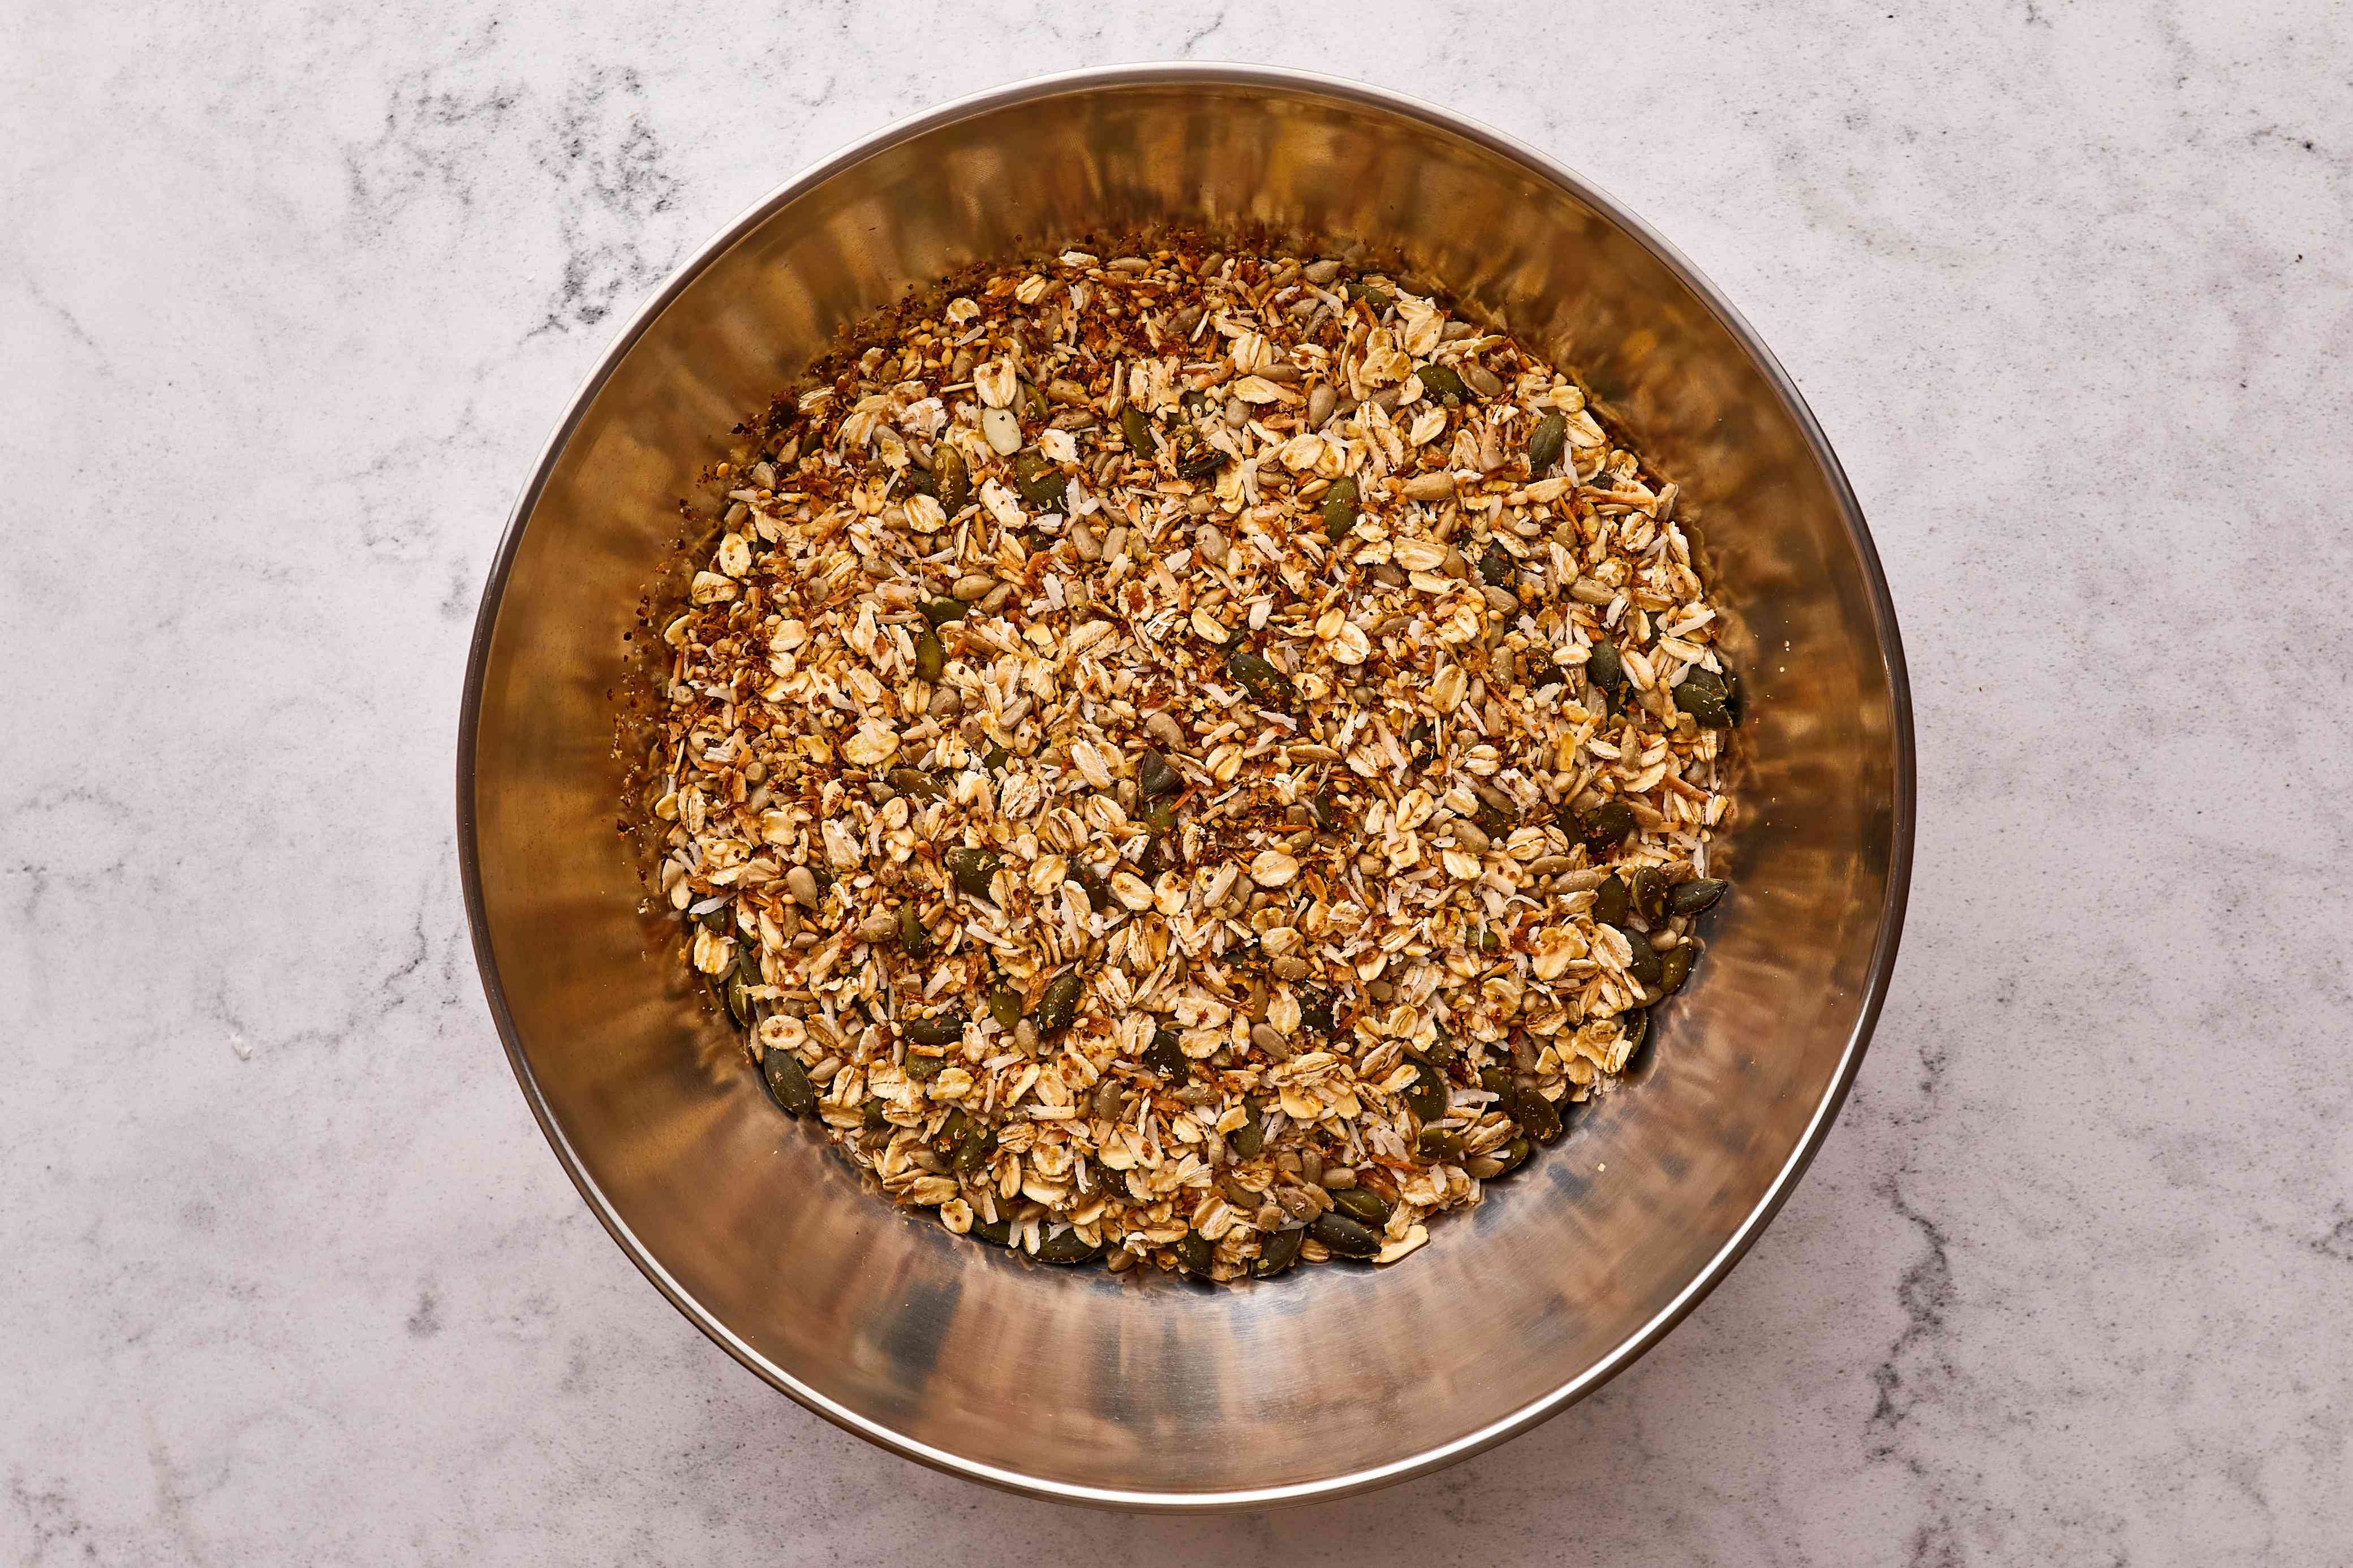 transfer oat mixture to a bowl